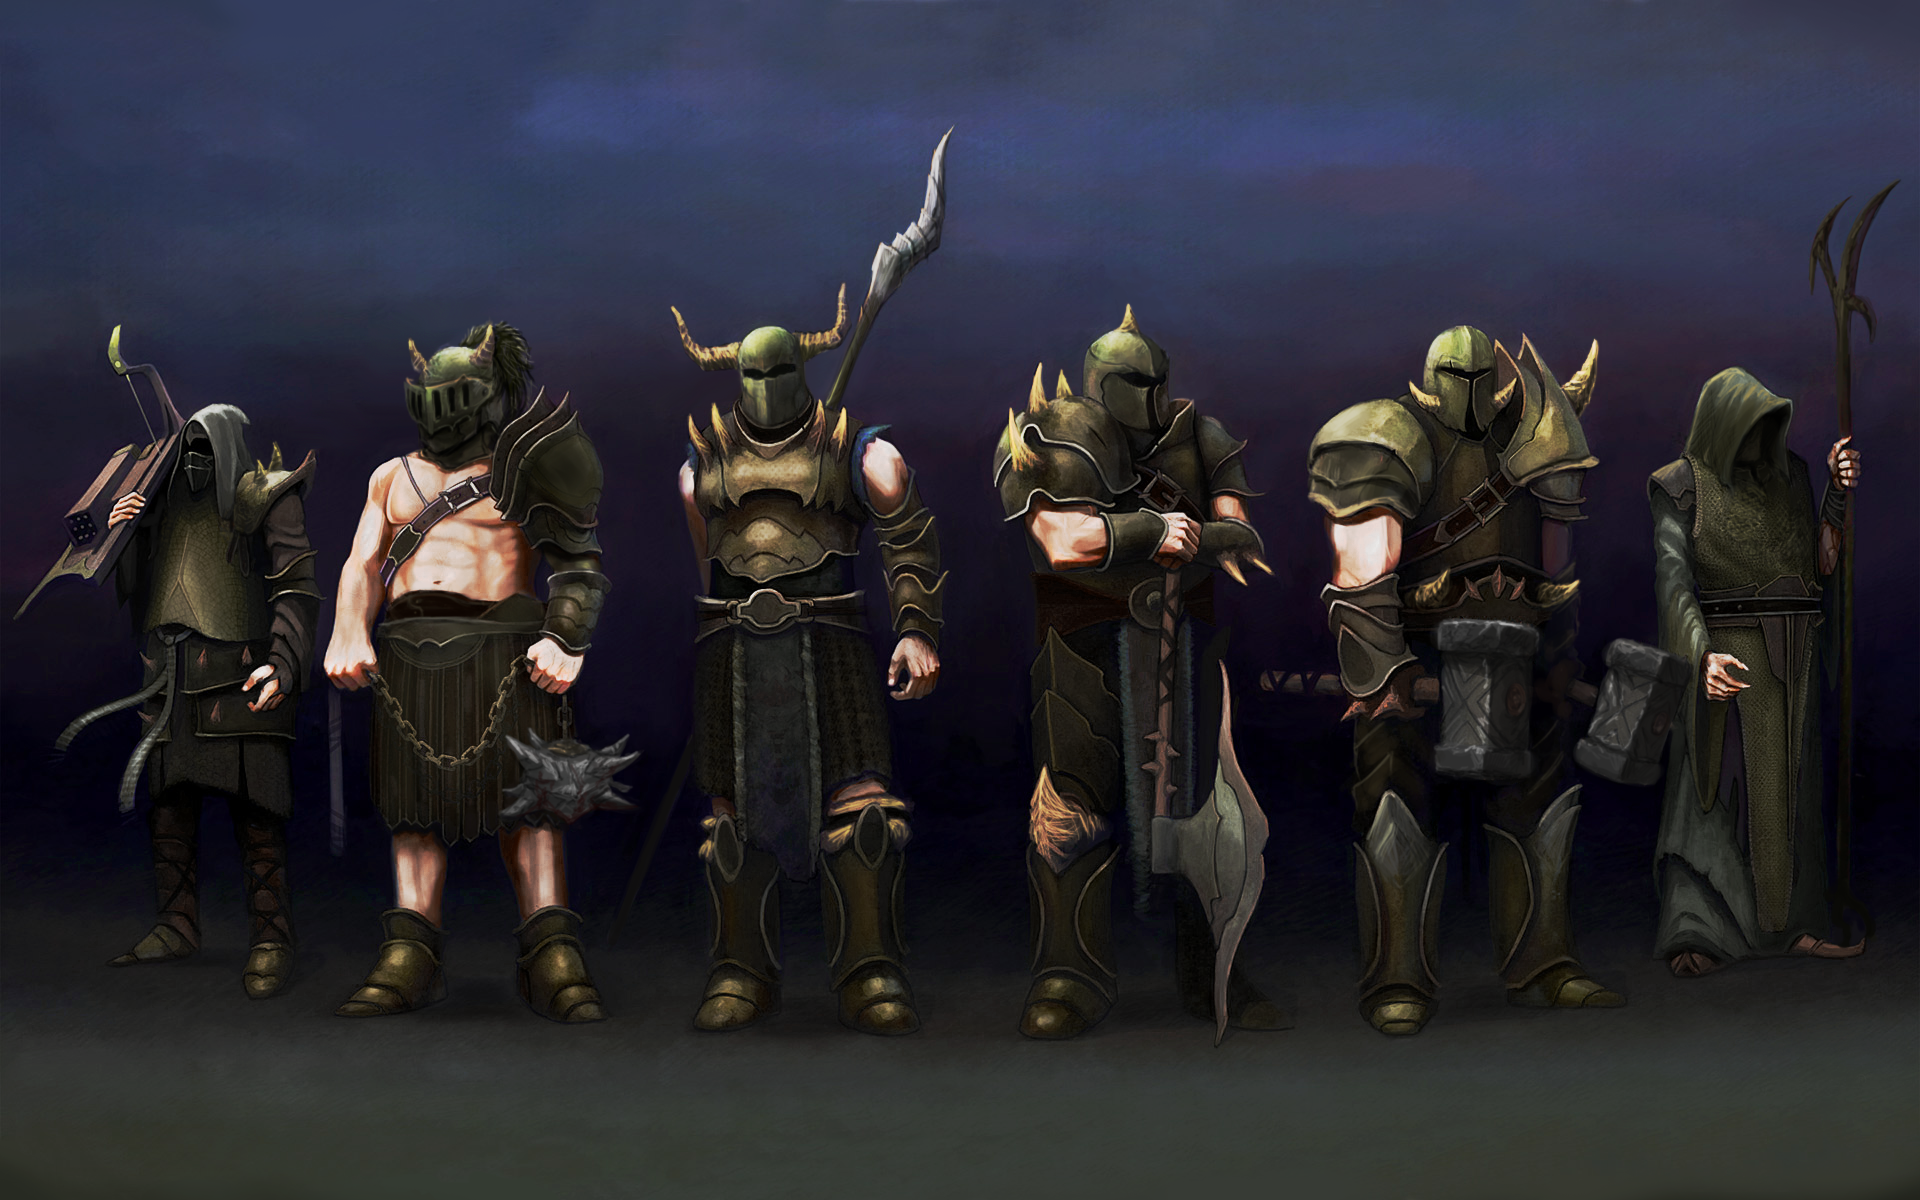 A Bit More Accurate Wallpaper Of The Barrows Bros Runescape Wallpaper Wallpaper Old School Runescape